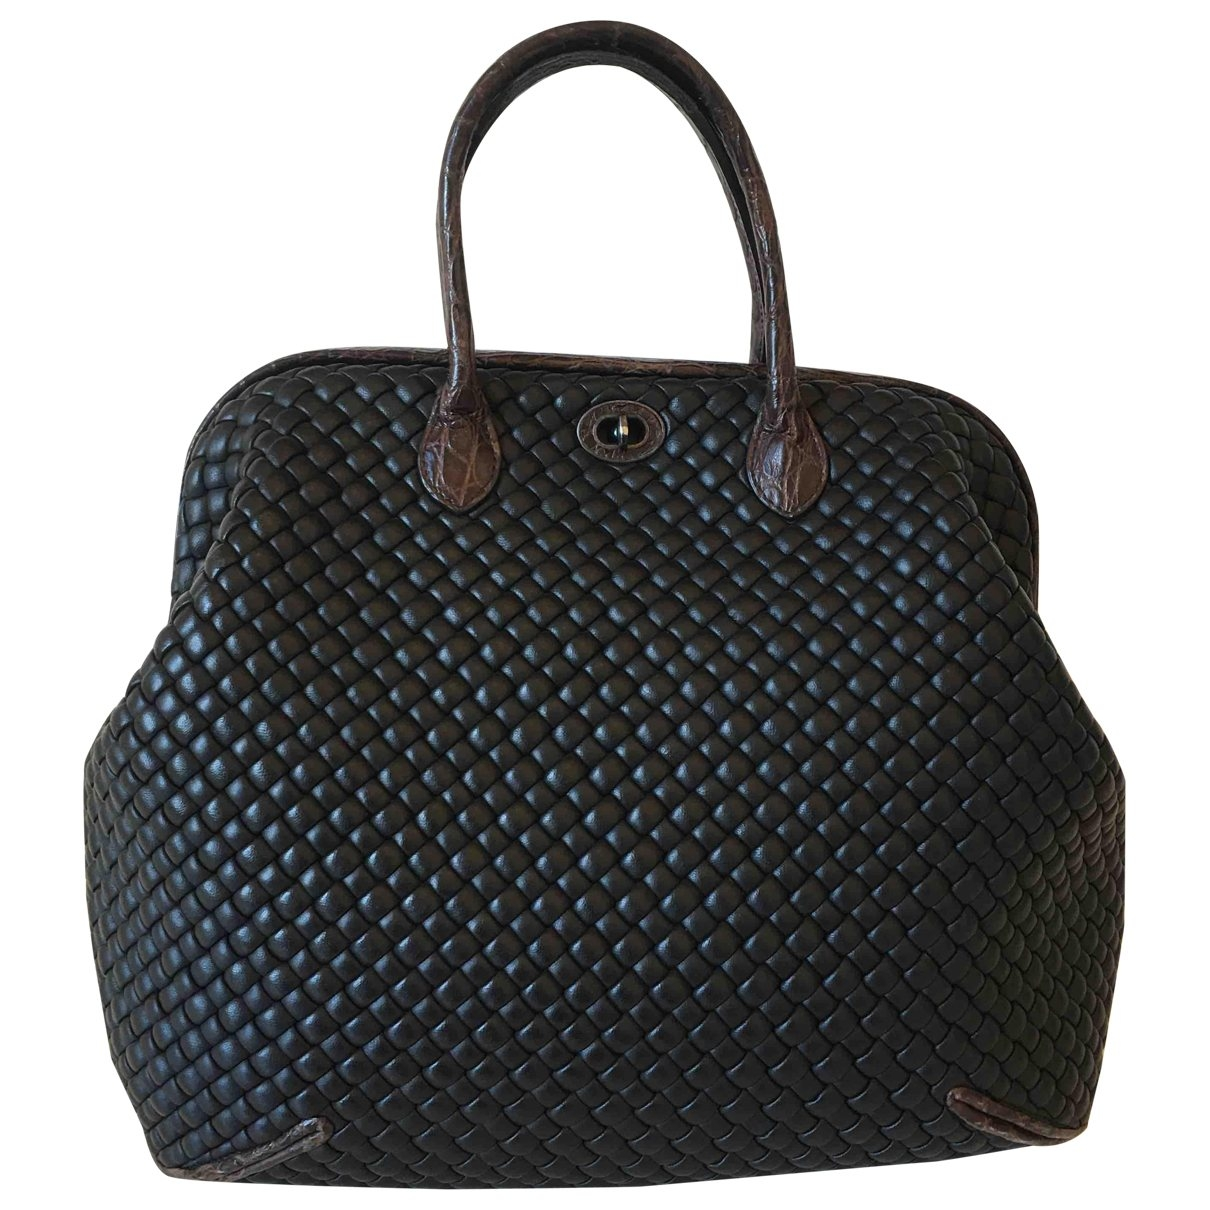 Bottega Veneta \N Black Leather handbag for Women \N